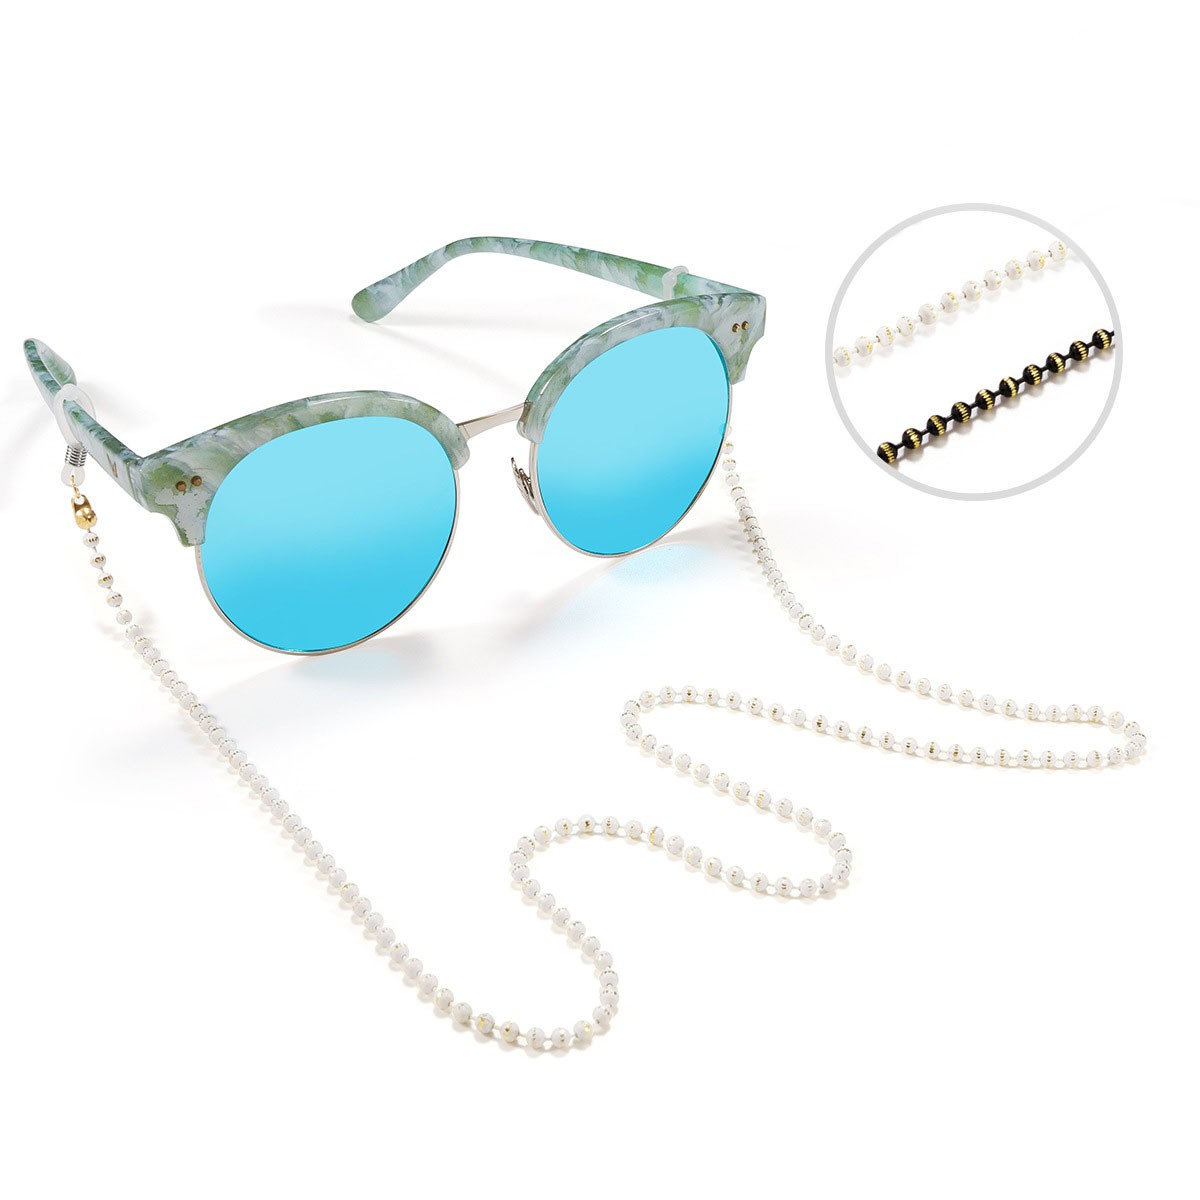 New Handmade glasses chain glasses lanyard anti slip glasses with presbyopia glasses chain glasses accessories Lolita